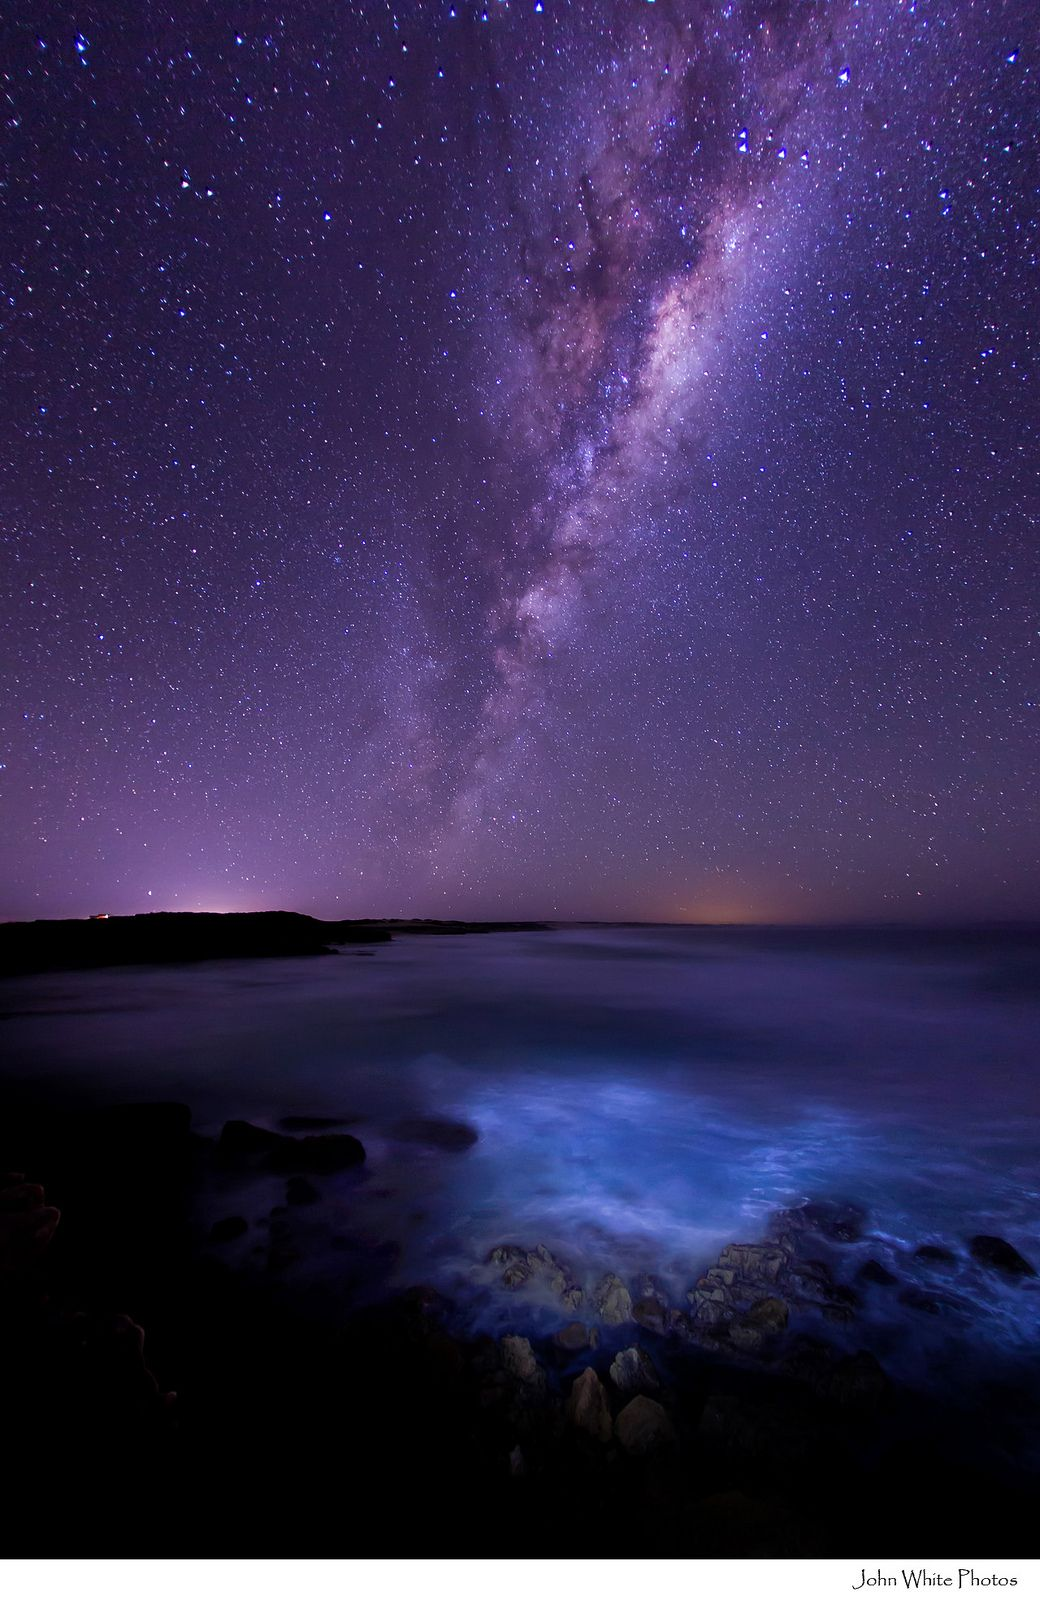 Milky Way over the Southern Ocean. Australia